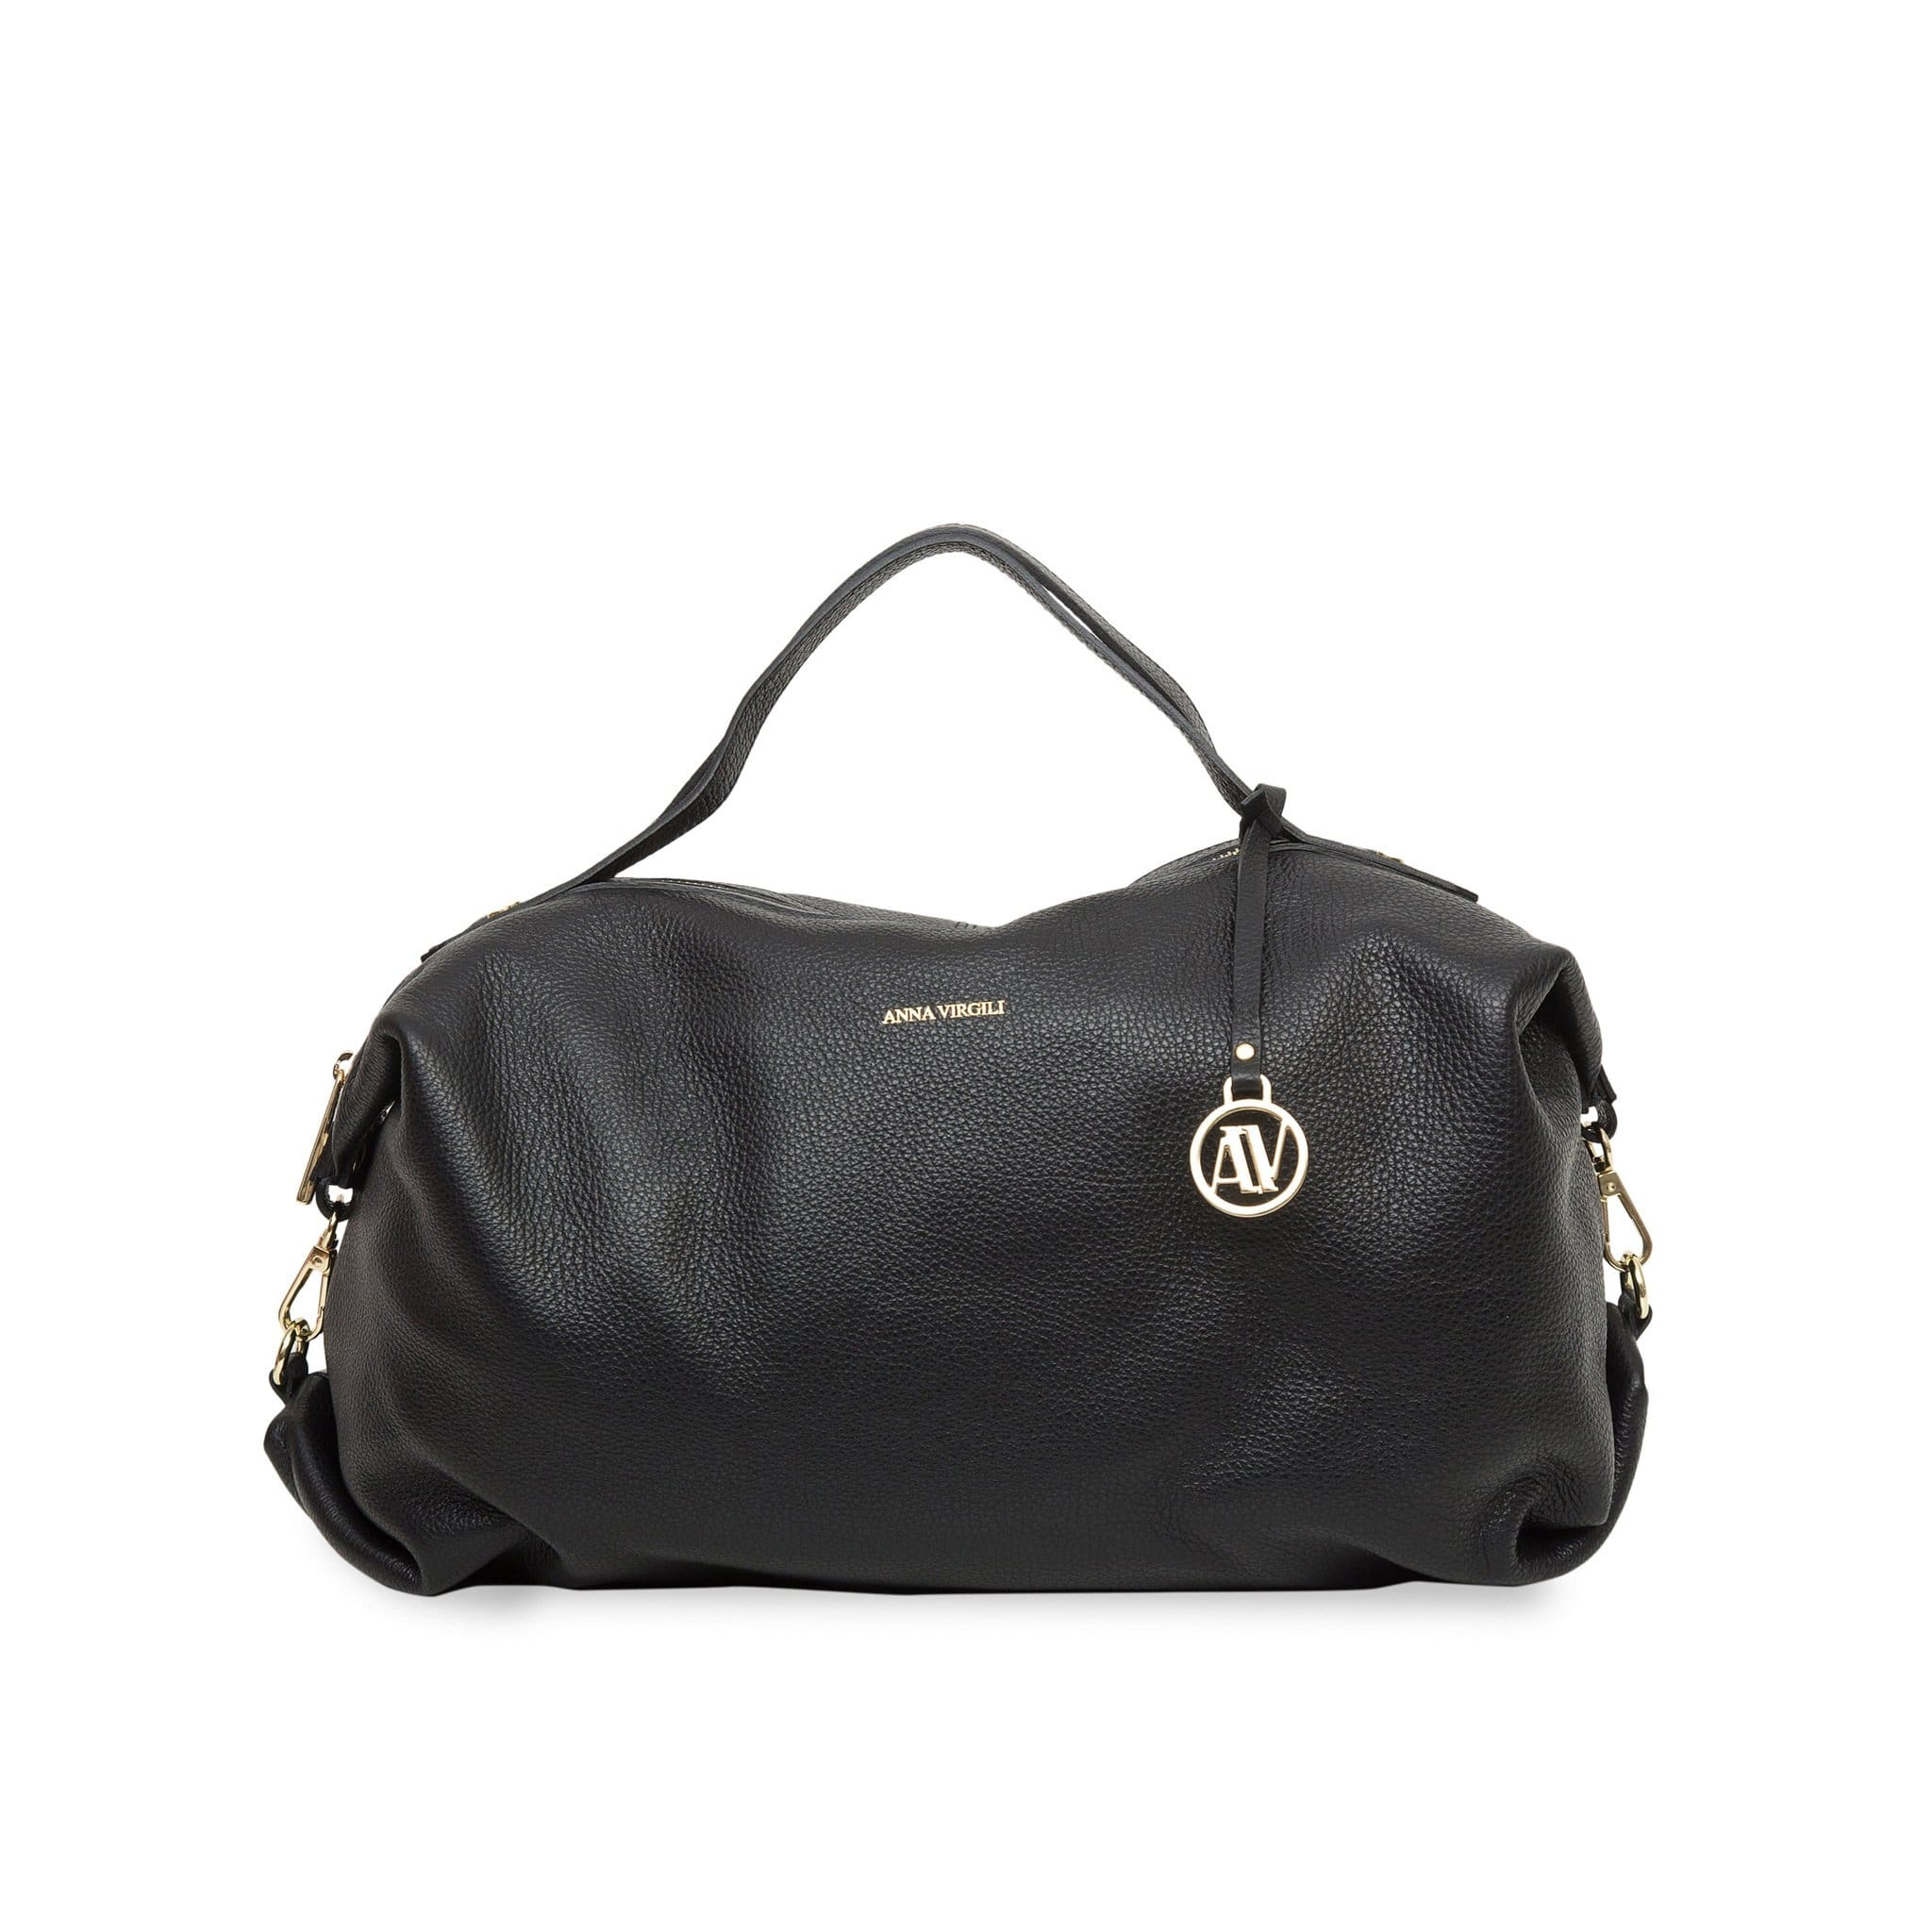 Giada Rimini Leather Handbag - Black